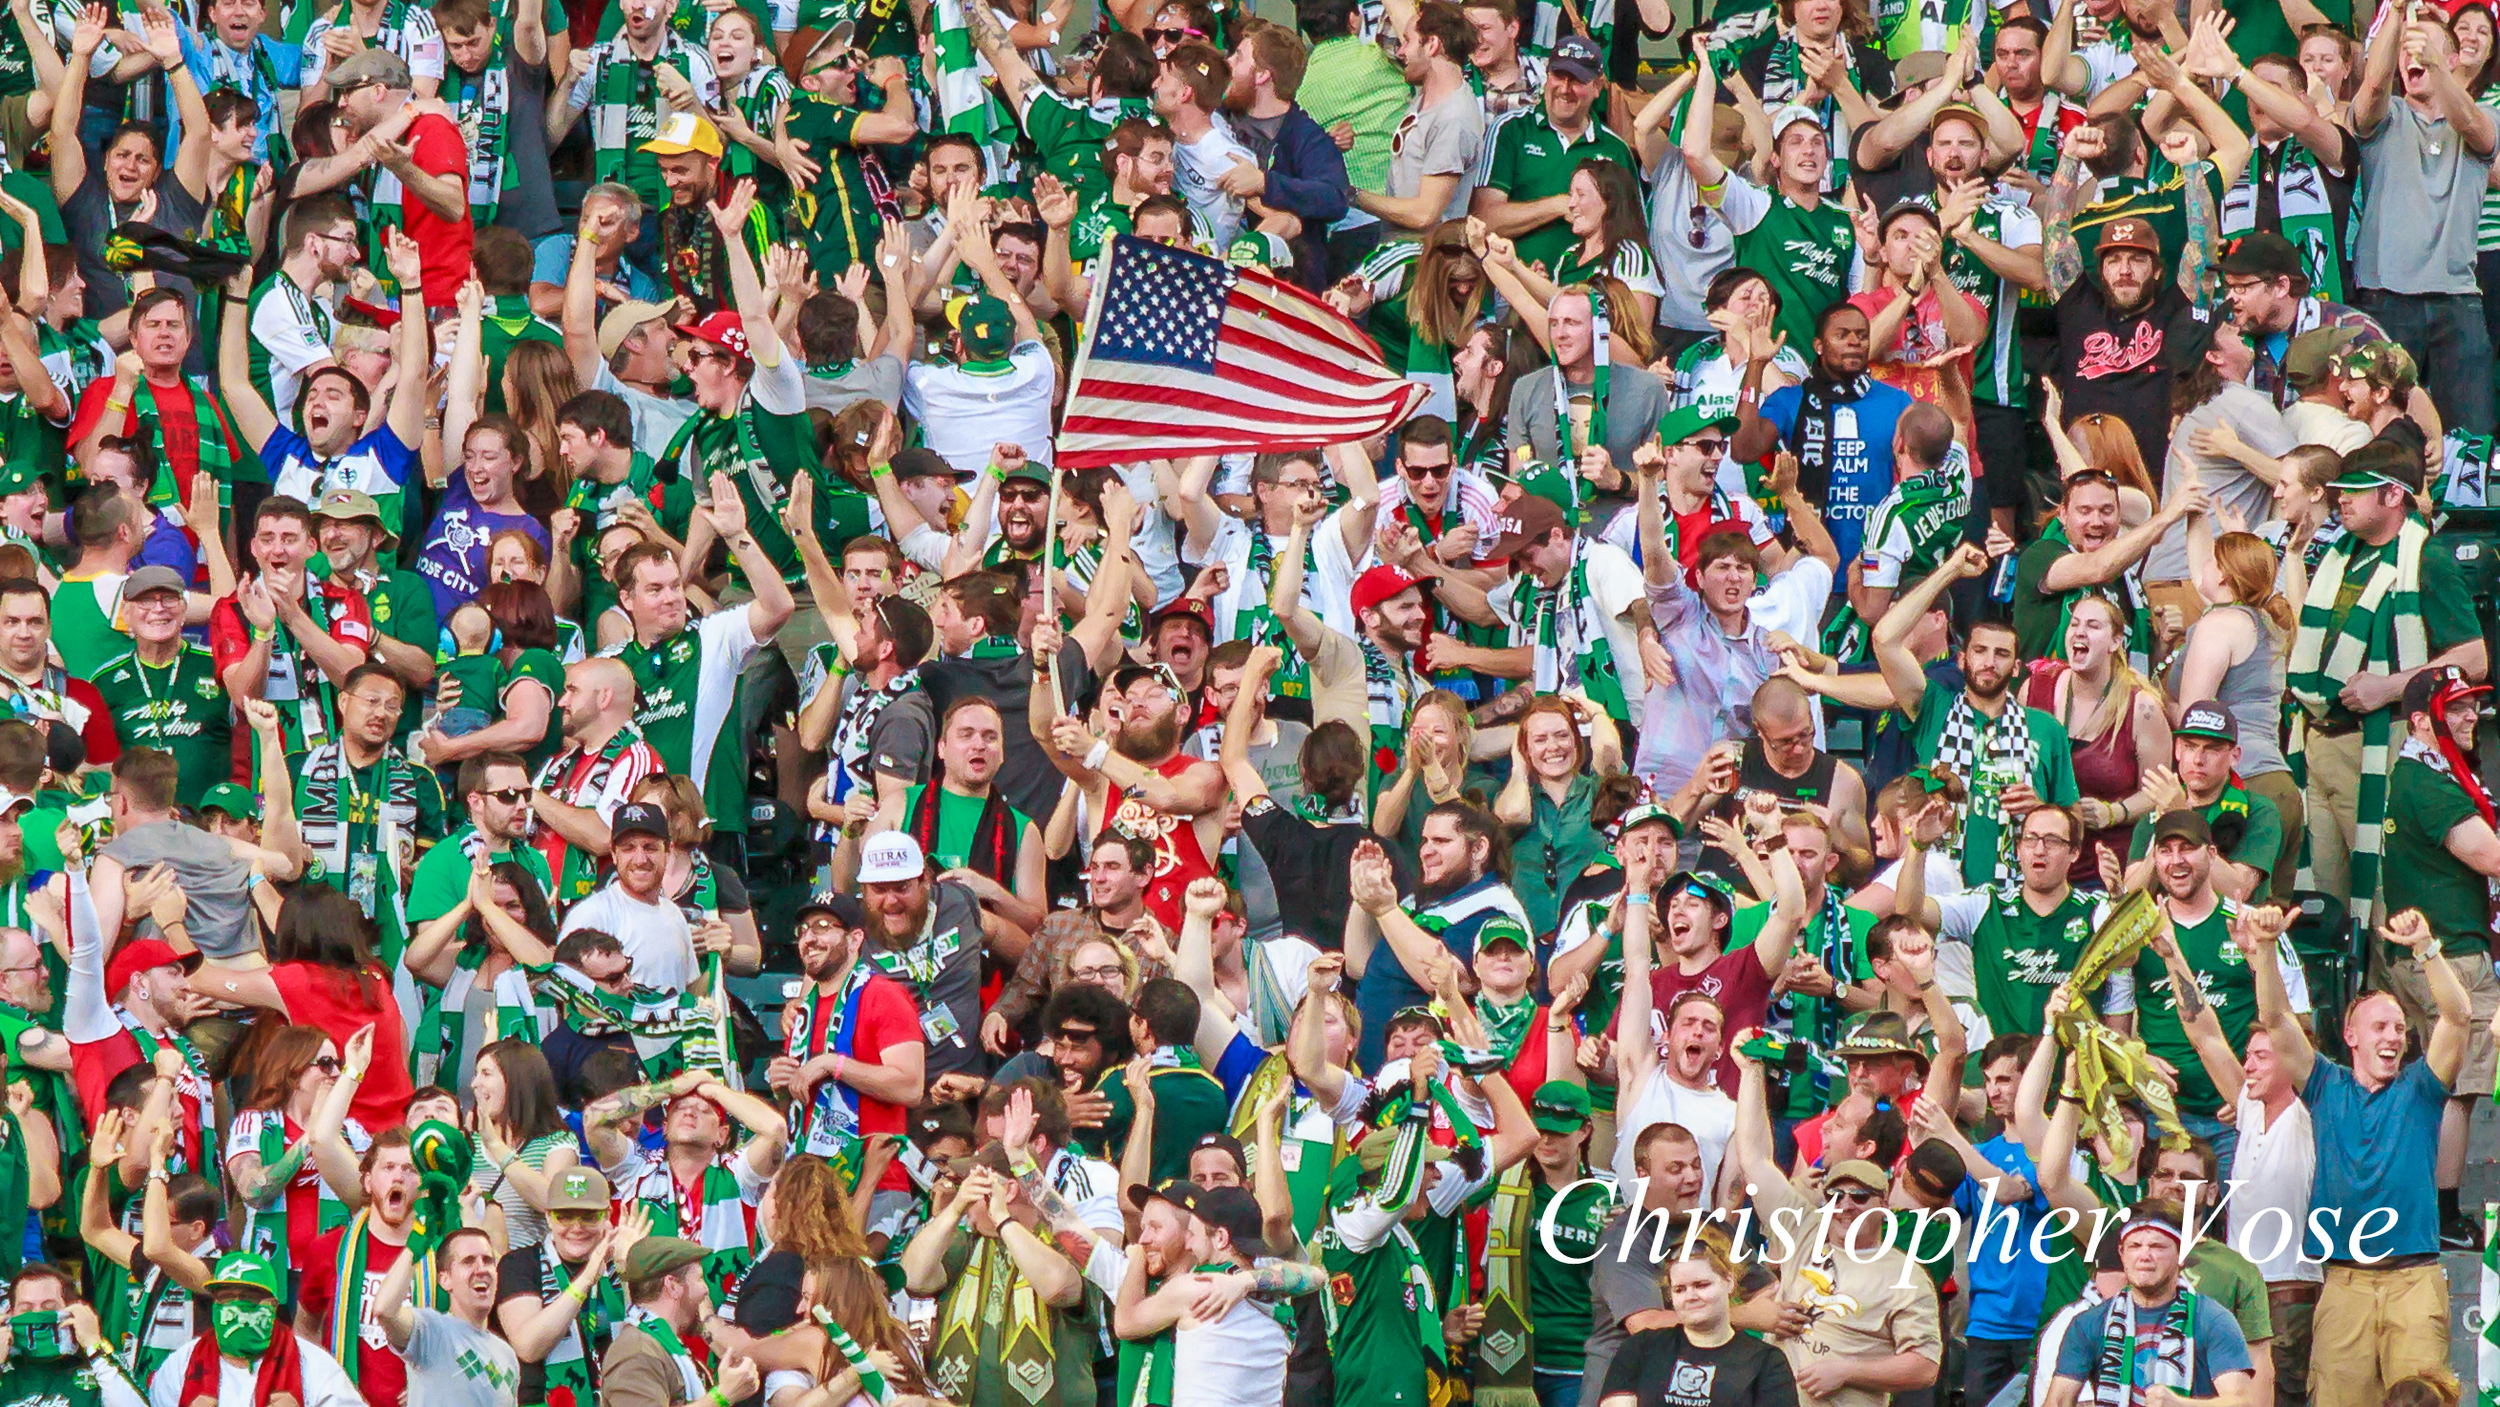 2014-06-01 Timbers Army Goal Reaction (Johnson) 1.jpg